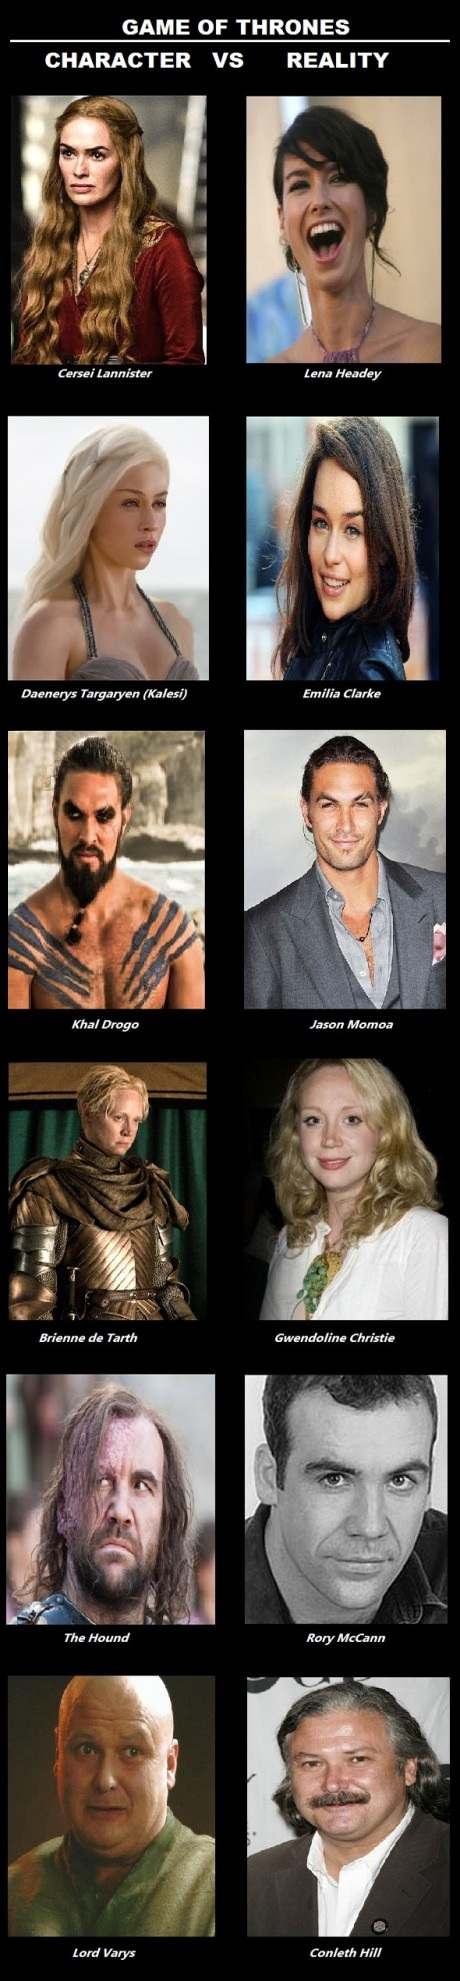 funny-picture-game-of-thrones-characters